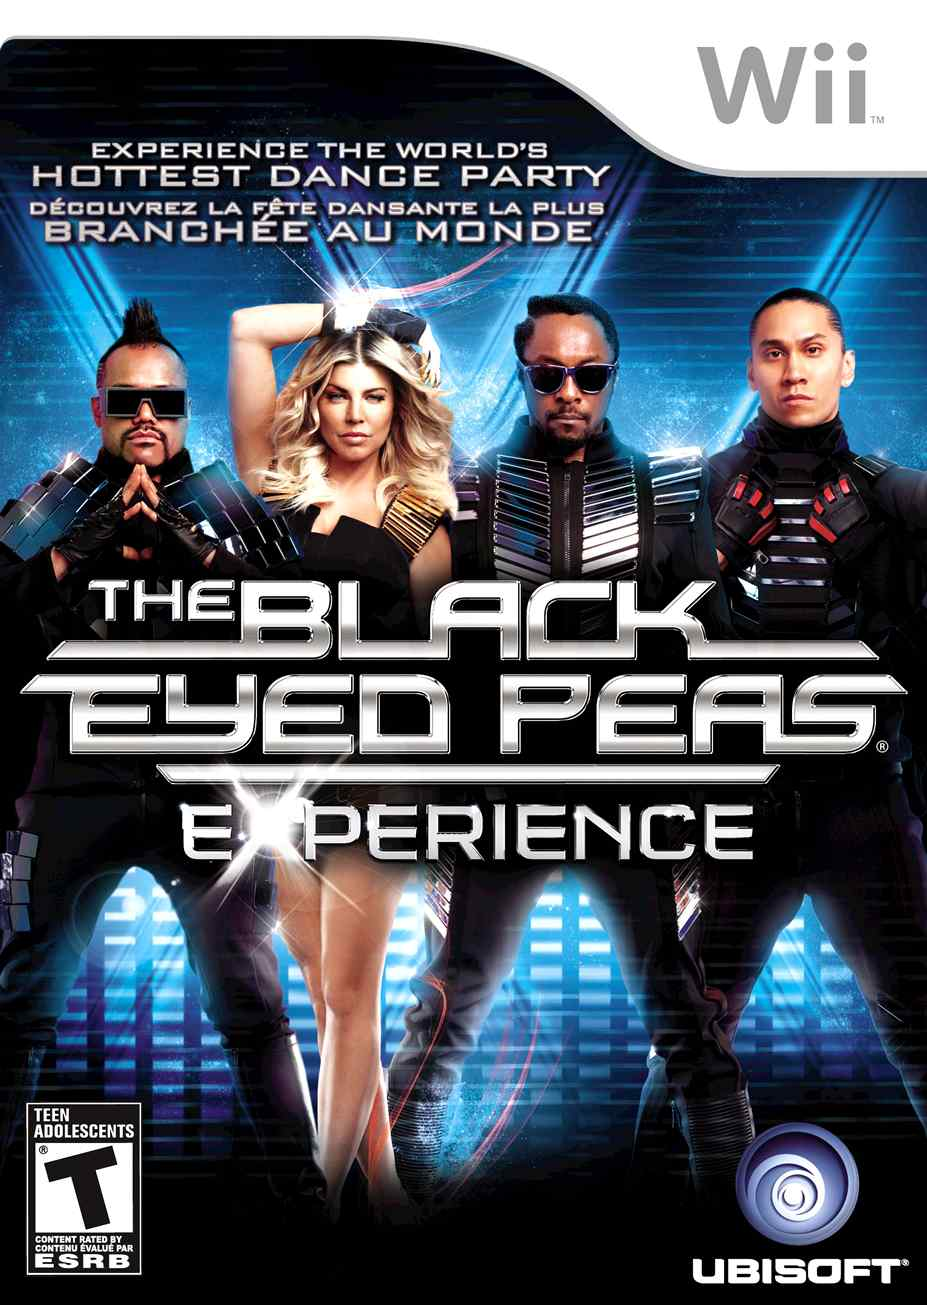 The Black Eyed Peas Experience/Wii